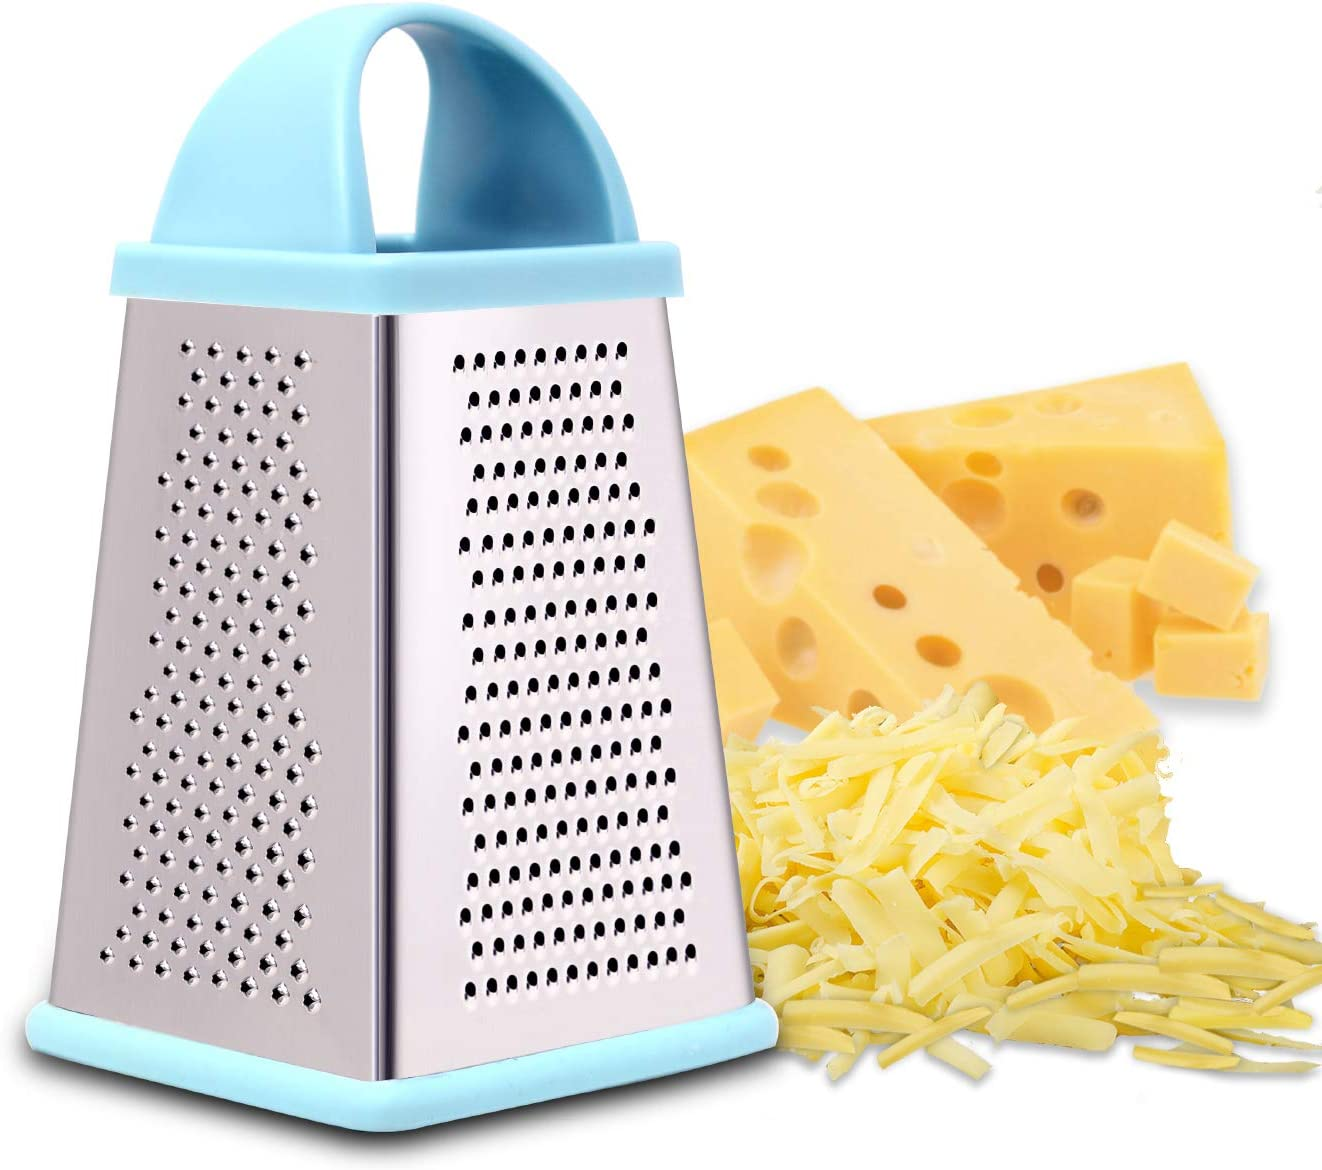 Professional Box Cheese Grater, Graters for Kitchen Stainless Steel and Shredder with 4 Sides, Best for Parmesan Cheese, Vegetables, Ginger, Food and More(blue)